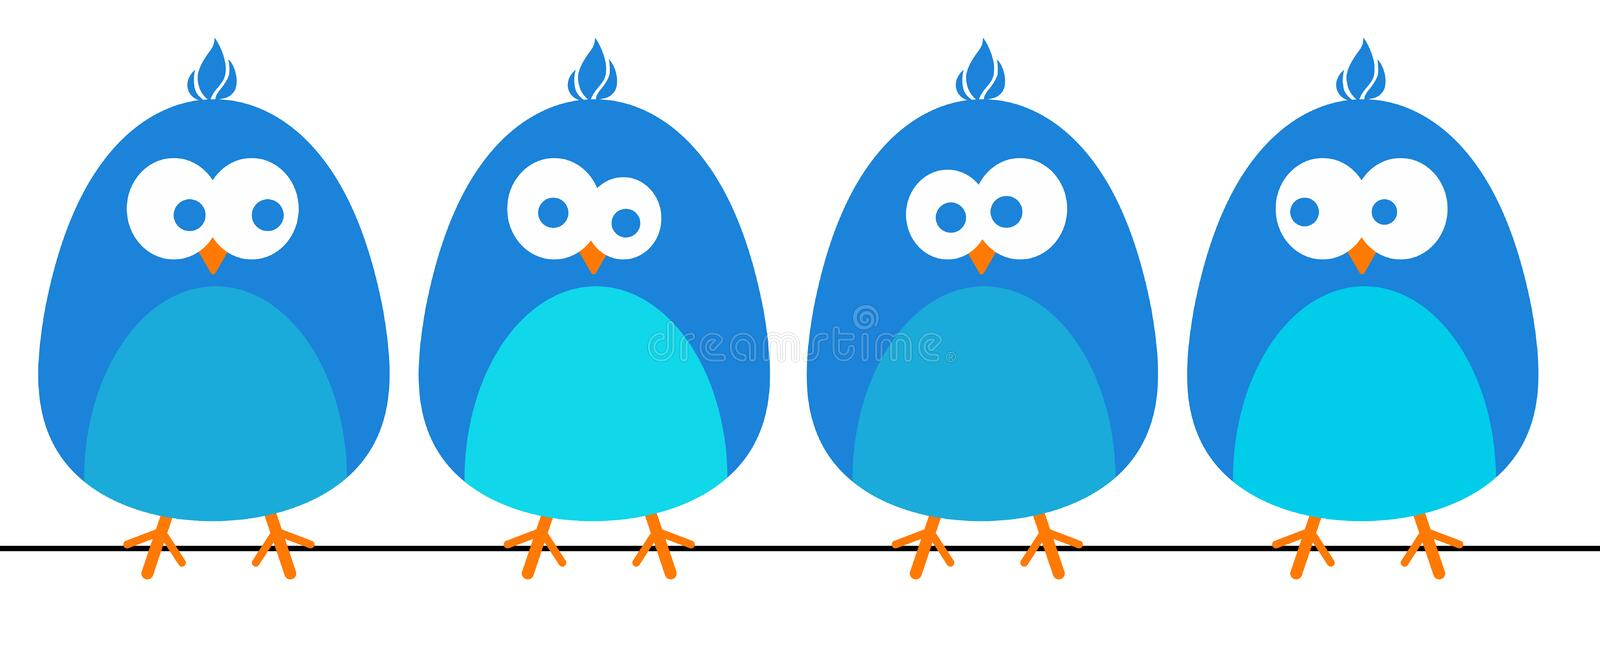 Blue Birds Royalty Free Stock Photography